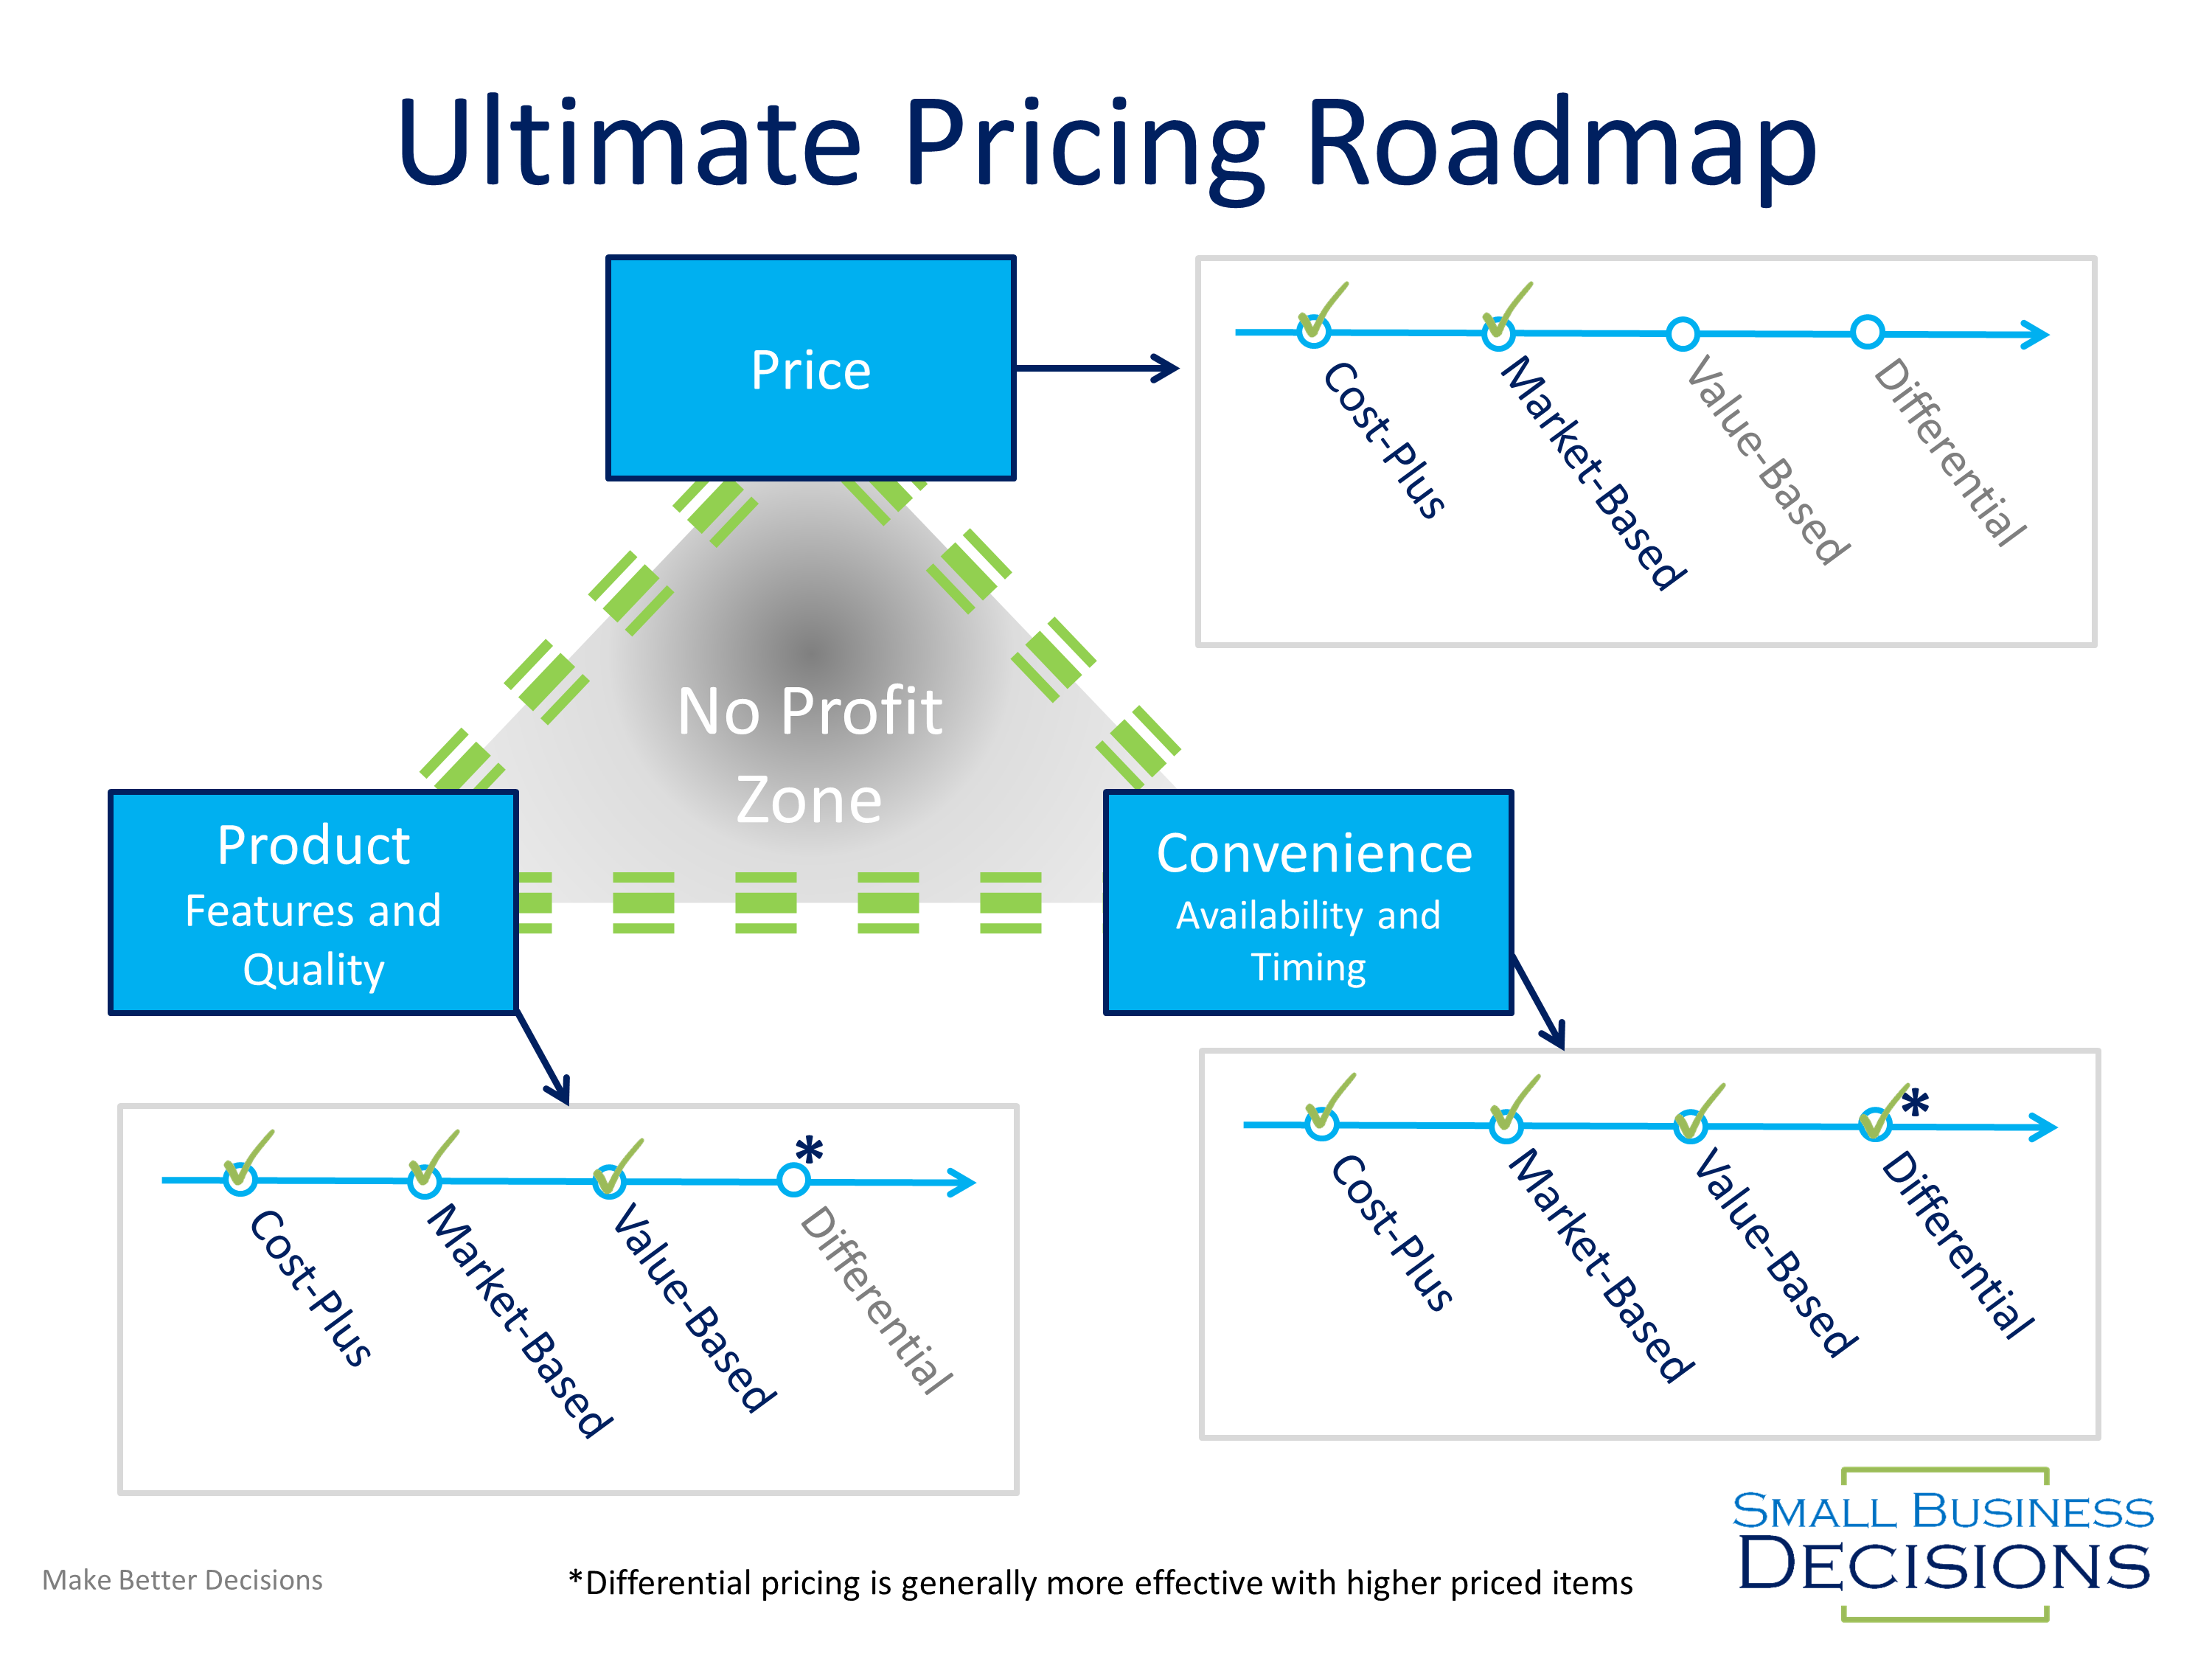 Ultimate Pricing Roadmap